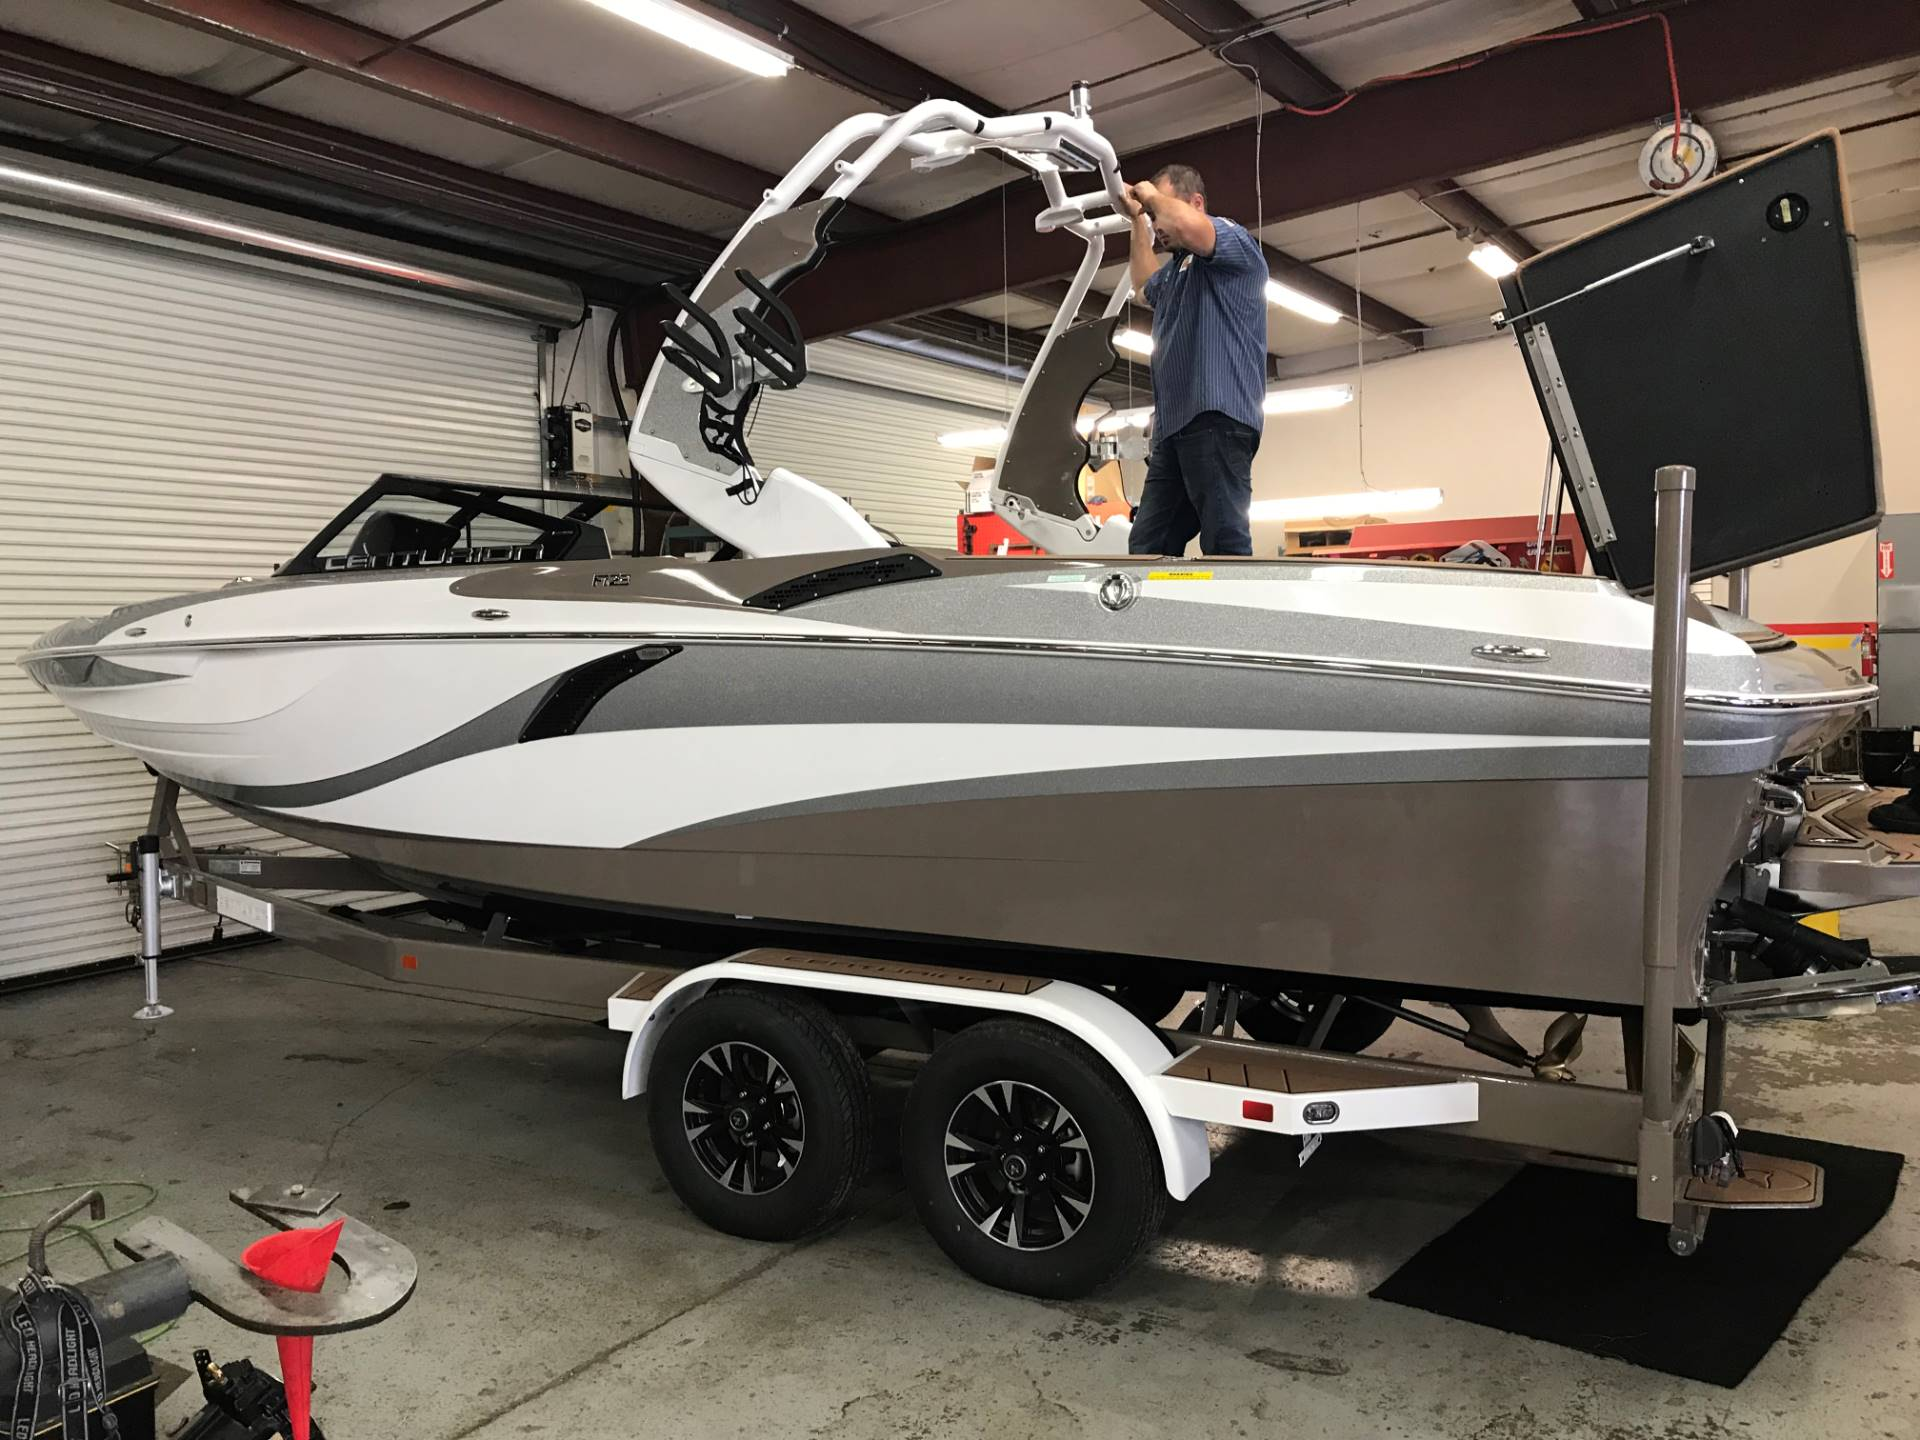 2019 Centurion Fi23 in Lakeport, California - Photo 1